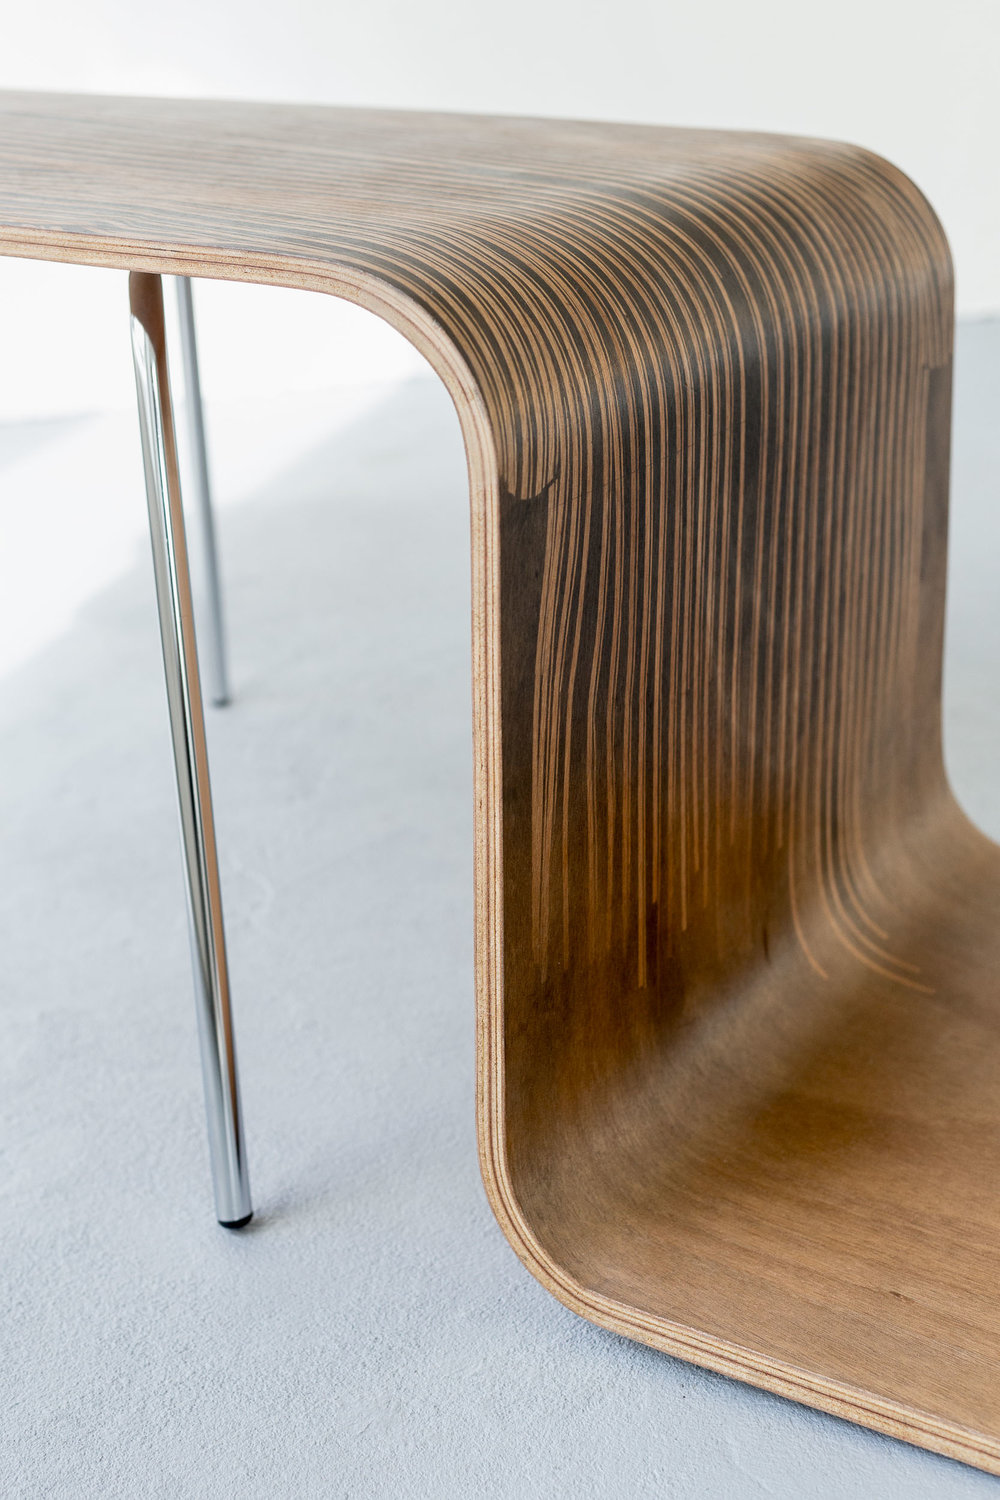 Fiona Banner,  Pinstripe Chair  (detail), 2015, graphite, vinyl, plywood, chair base, 43.3 x 149 x 46.2 cm  Photo: Kilian Bannwart